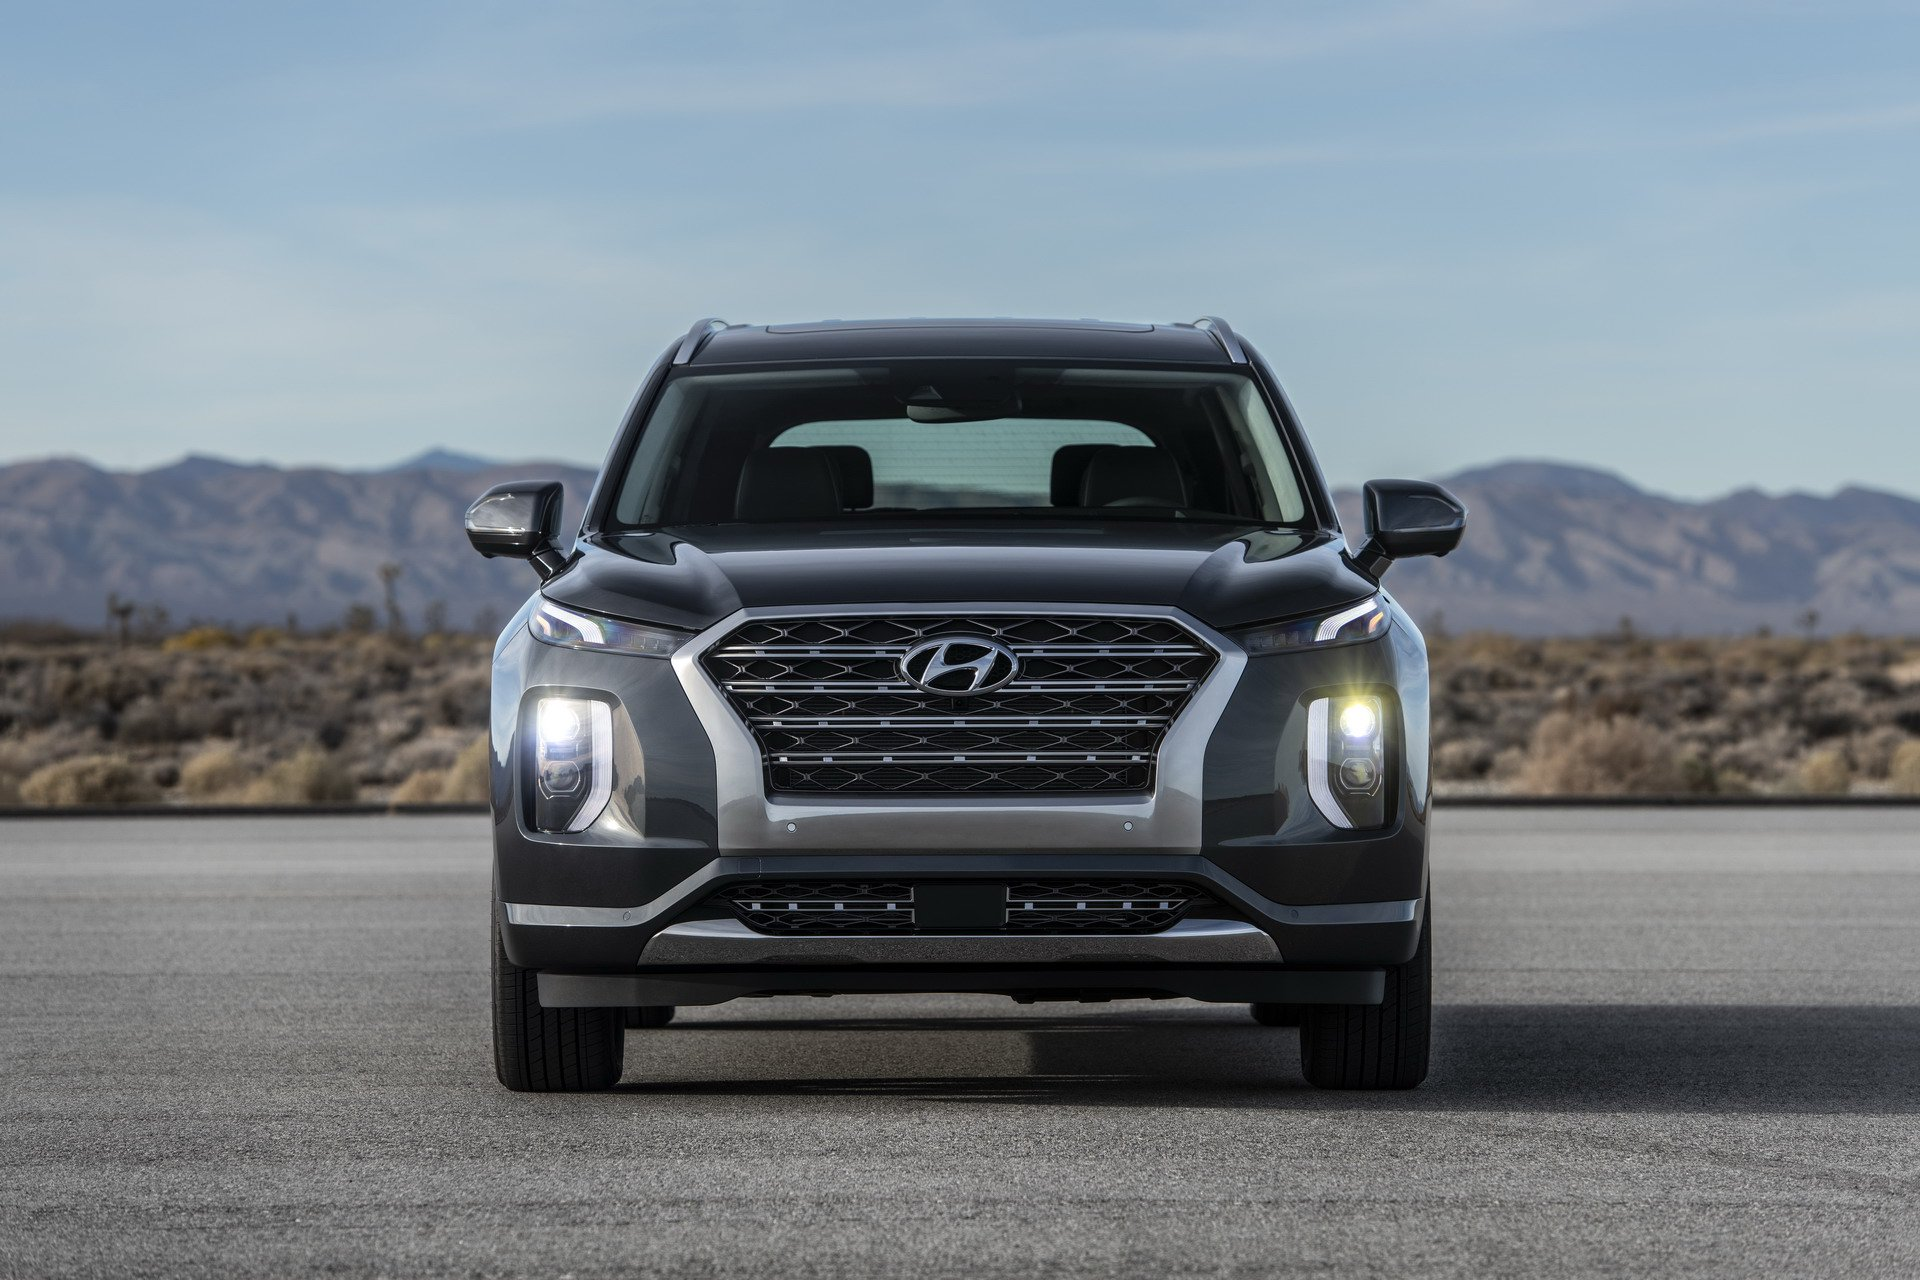 2020 Hyundai Palisade front grille